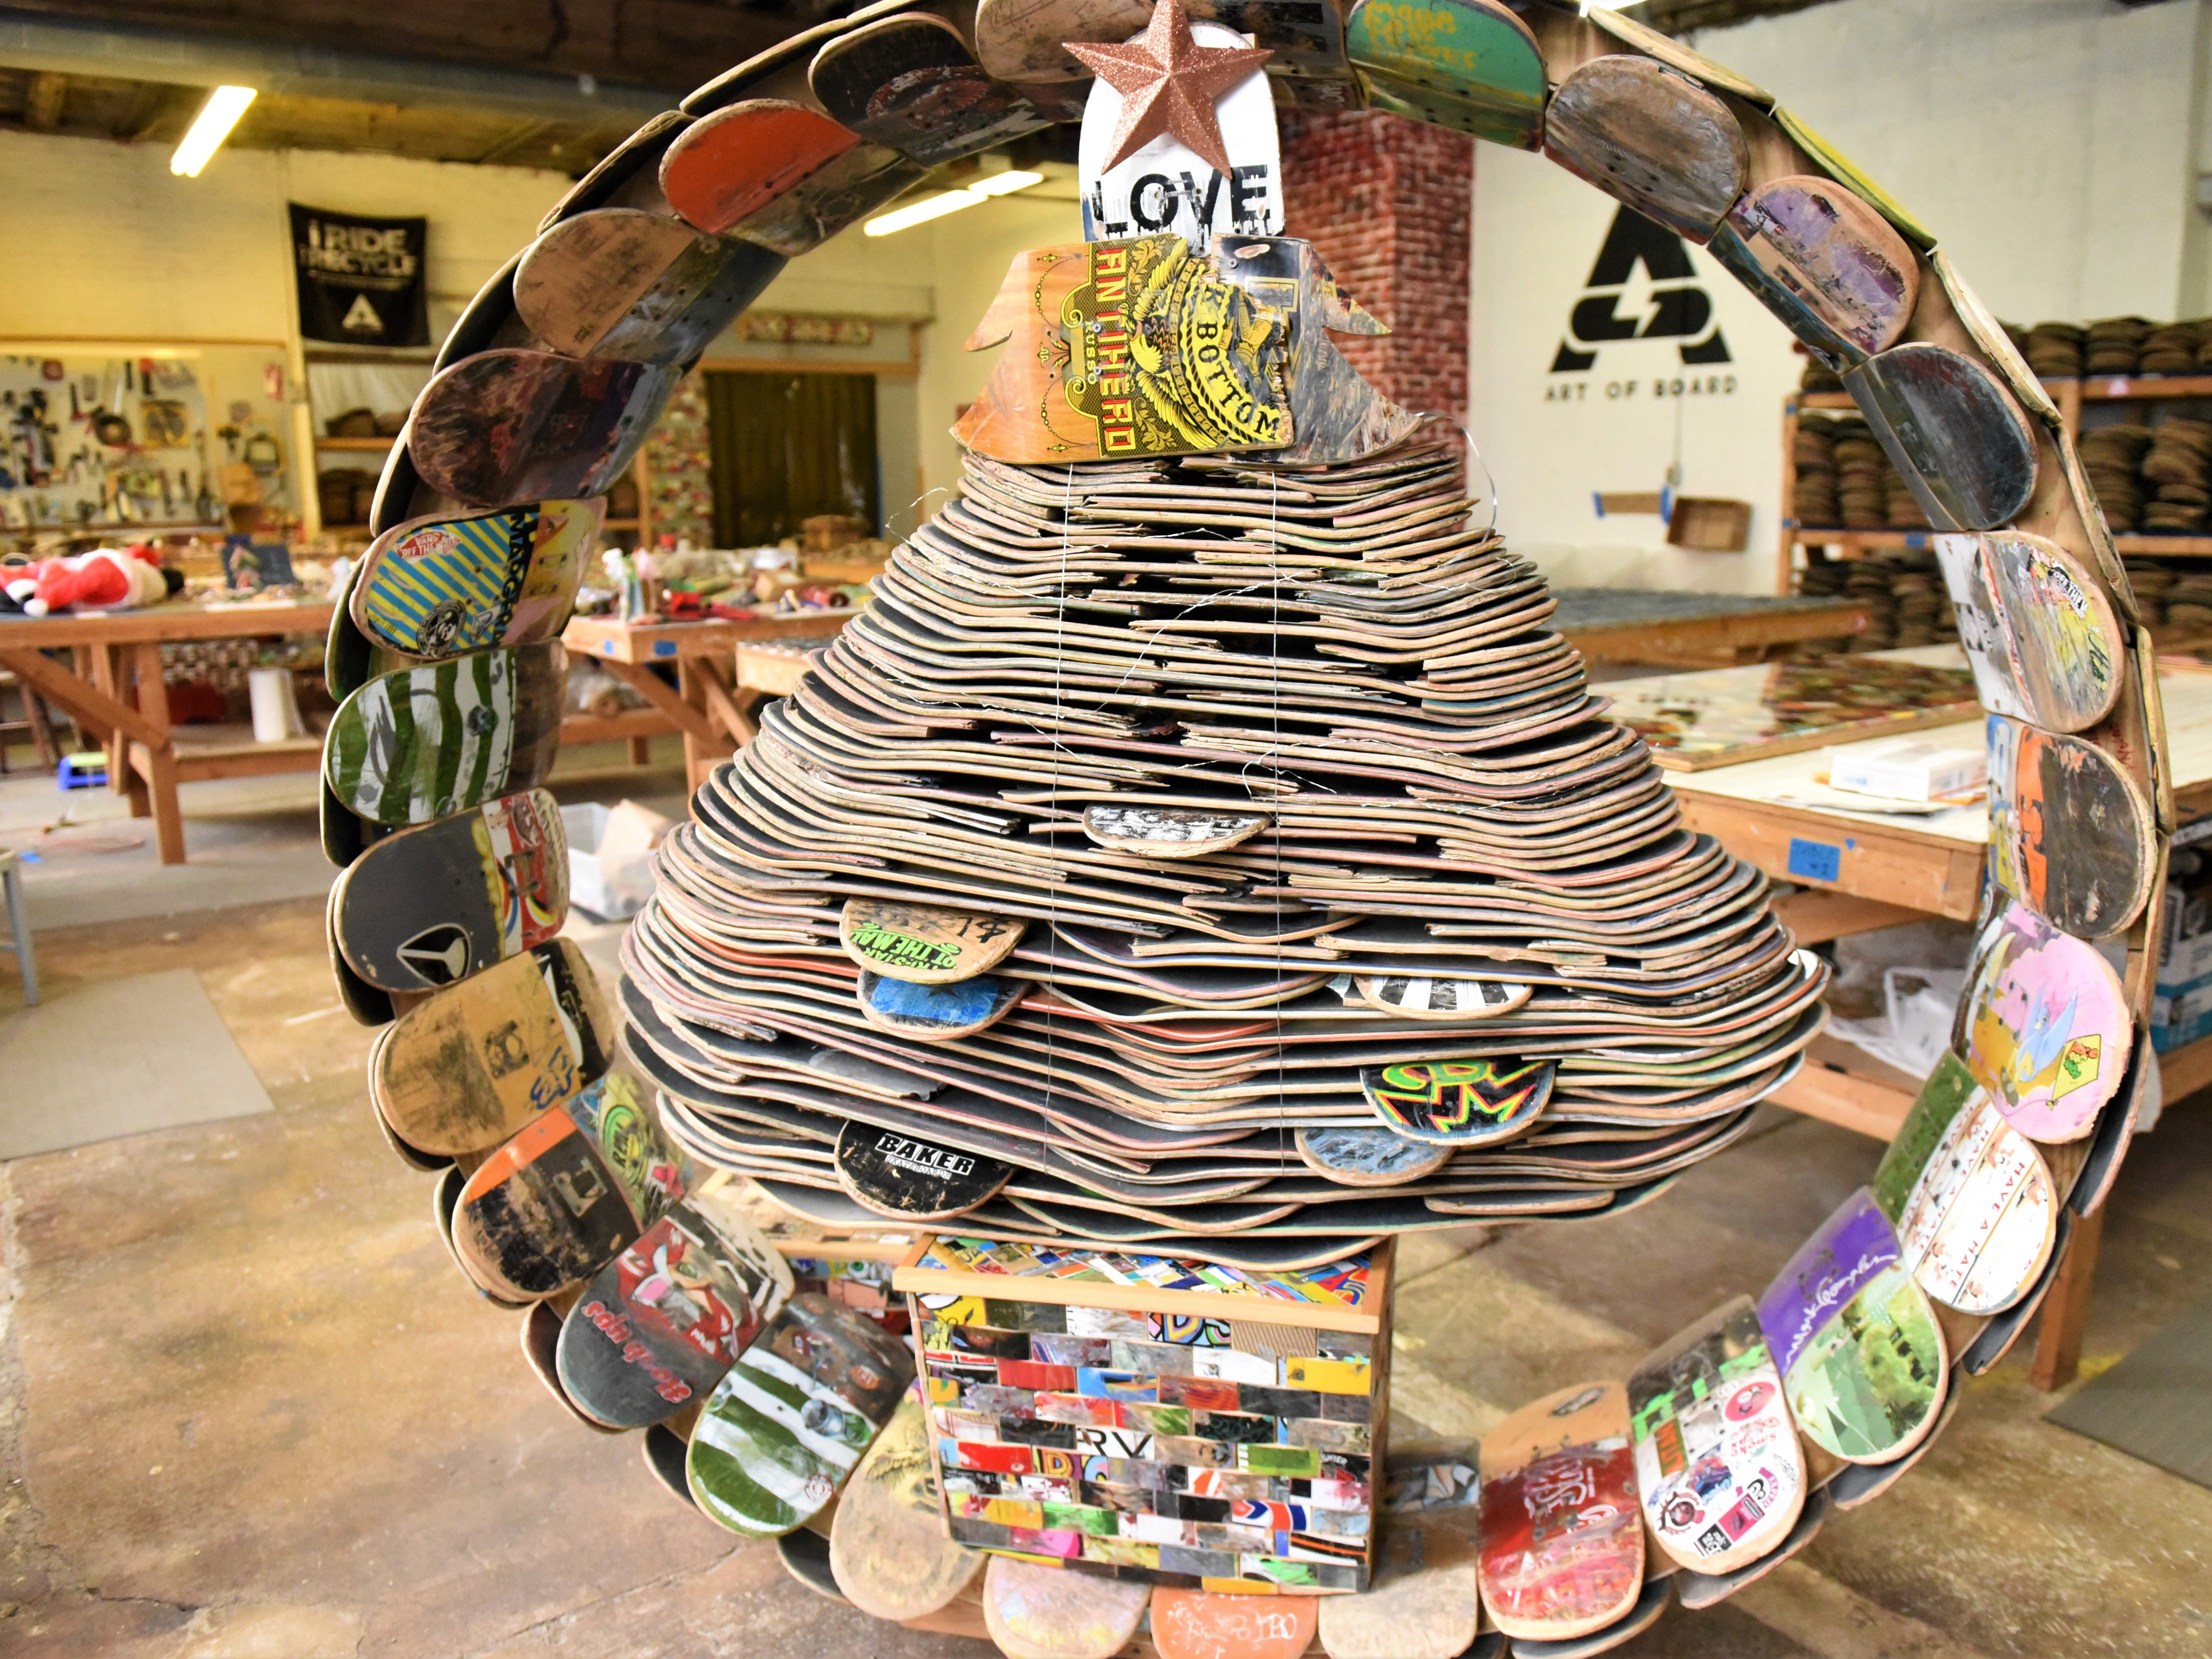 Art of Board is located at 218 East Chestnut St. Visit mainstreethanover.org for details about Christmas Tree Wars.